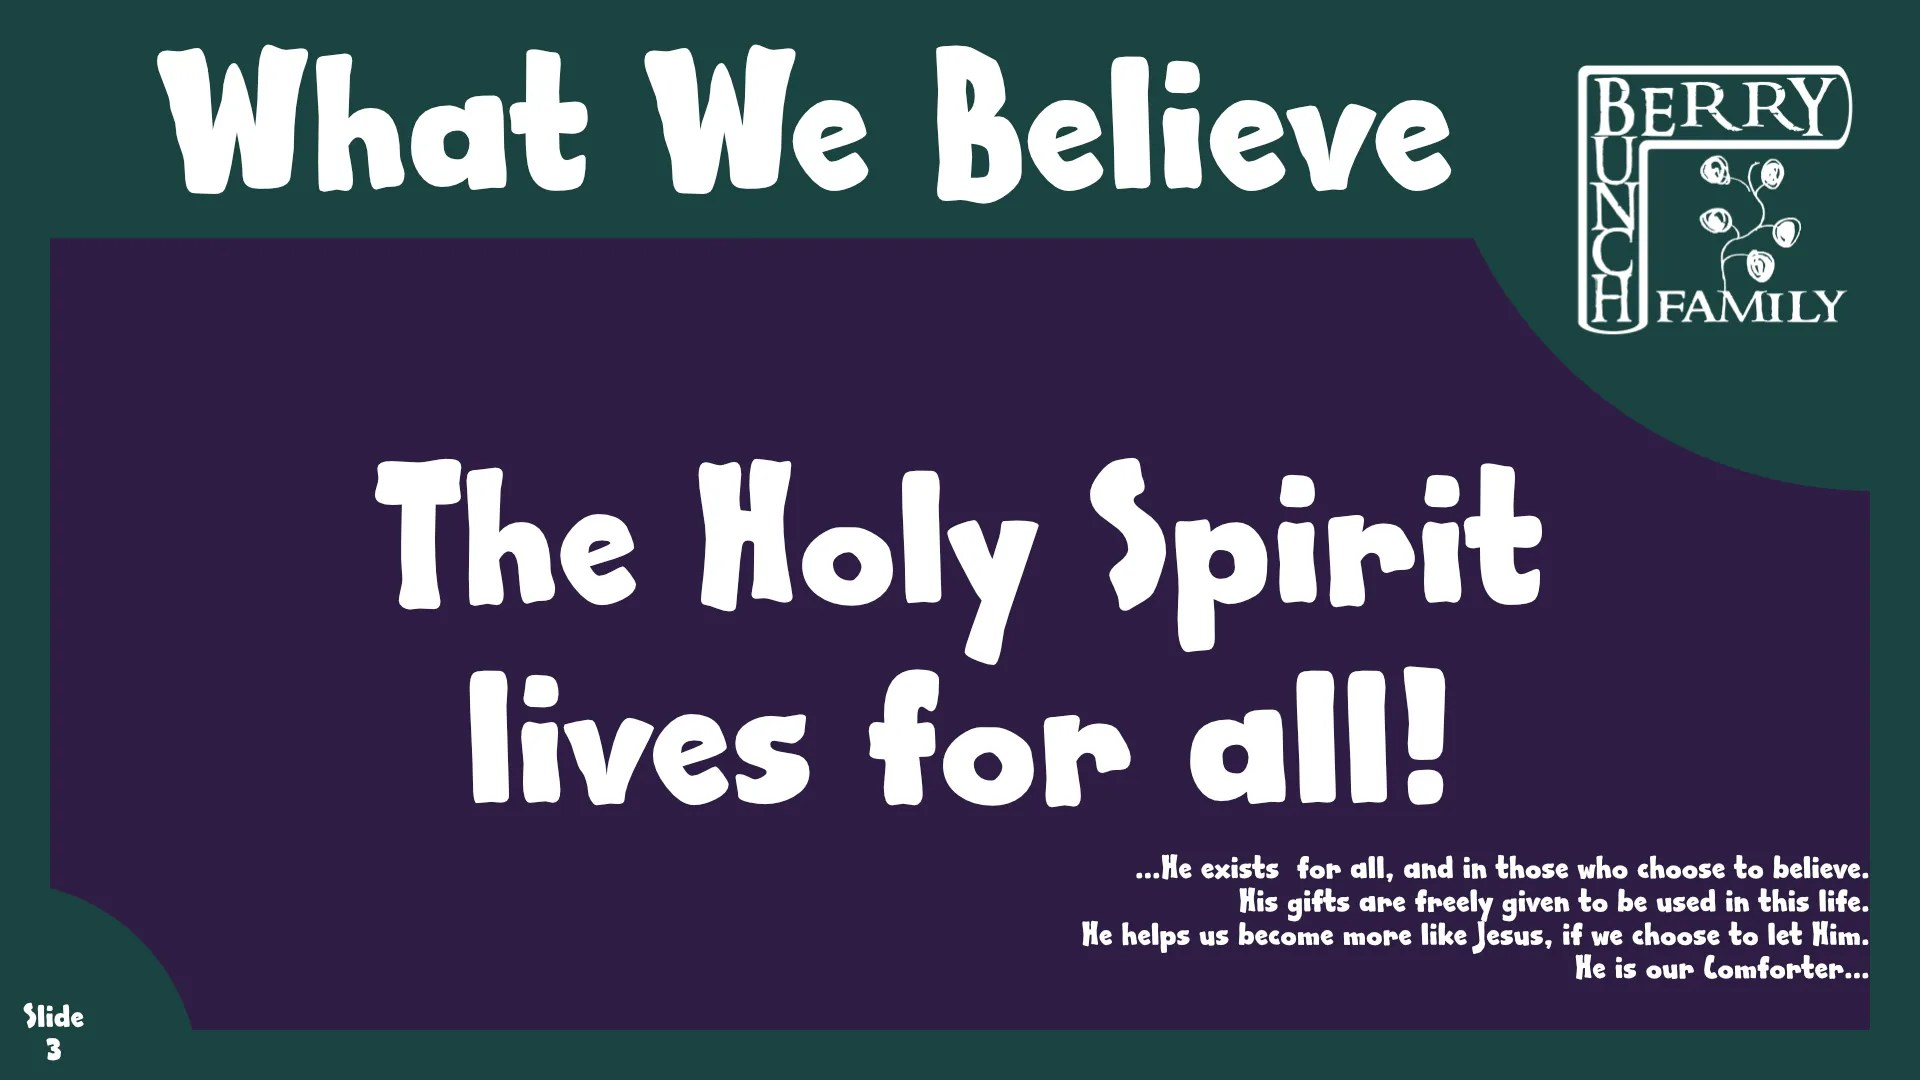 What We Believe:The Holy Spirit Loves For All! …He exists  for all, and in those who choose to believe. His gifts are freely given to be used in this life. He helps us become more like Jesus, if we choose to let Him. He is our Comforter…